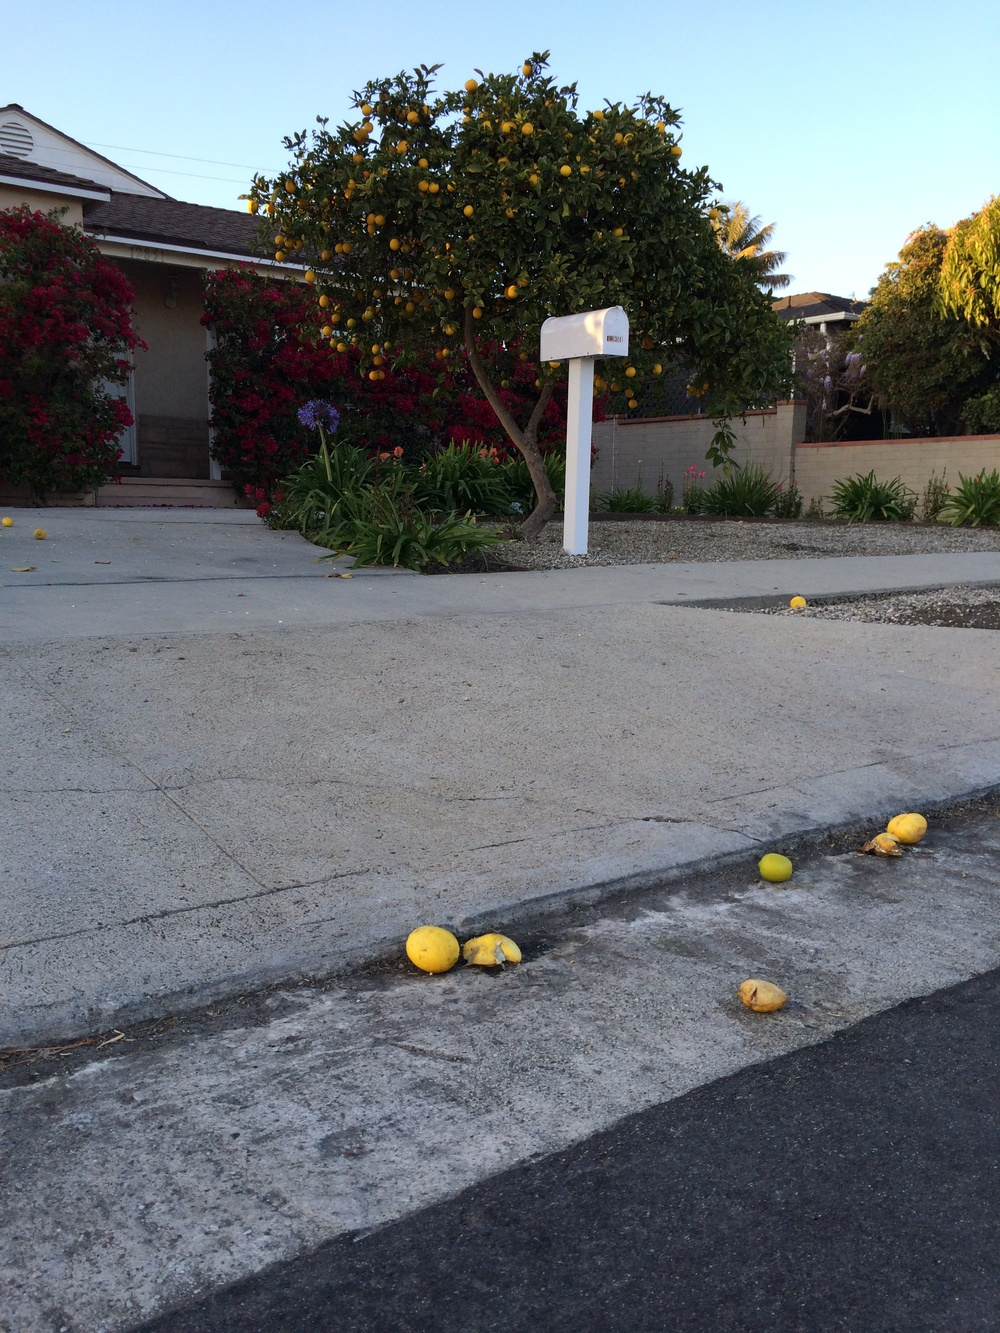 Lemons rolling into the streets...